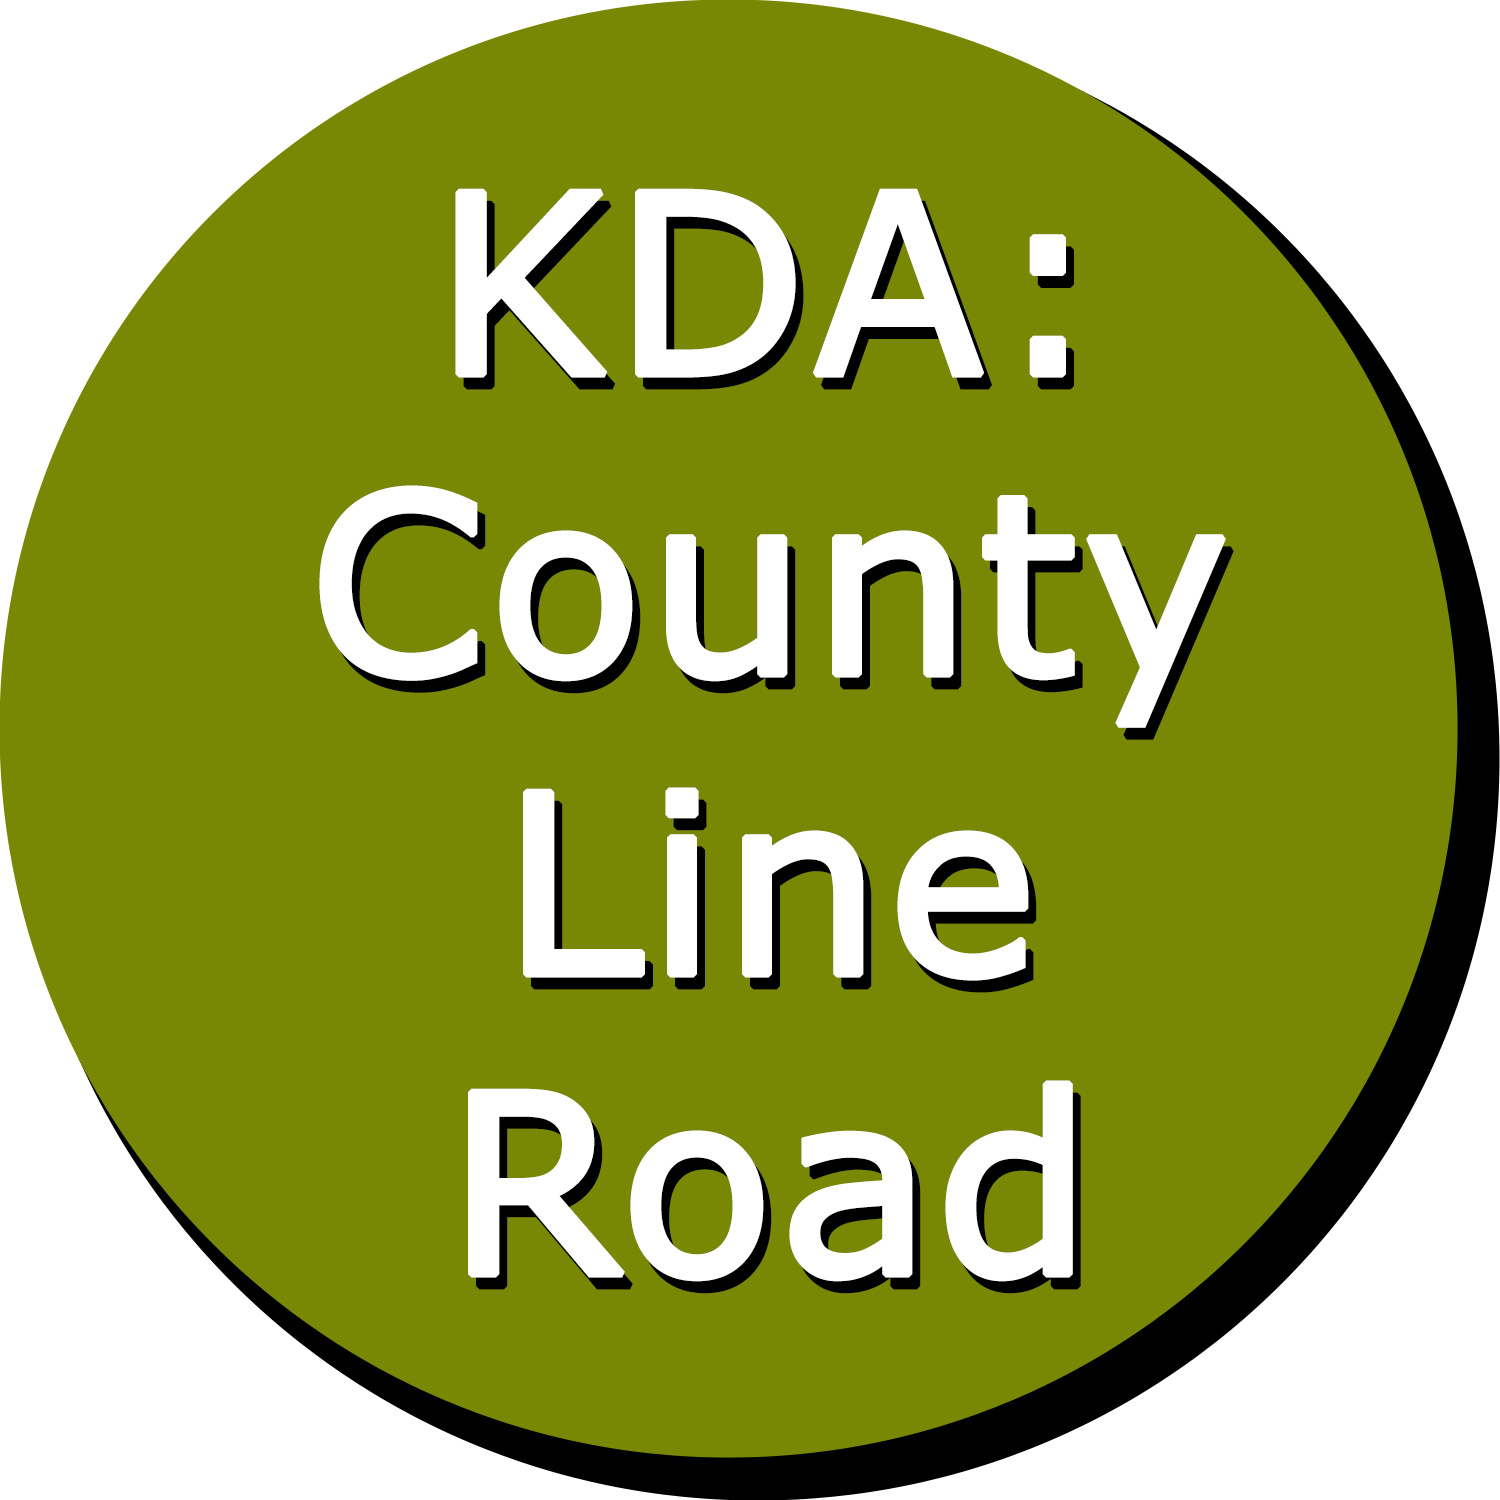 KDA: County Line Road Button